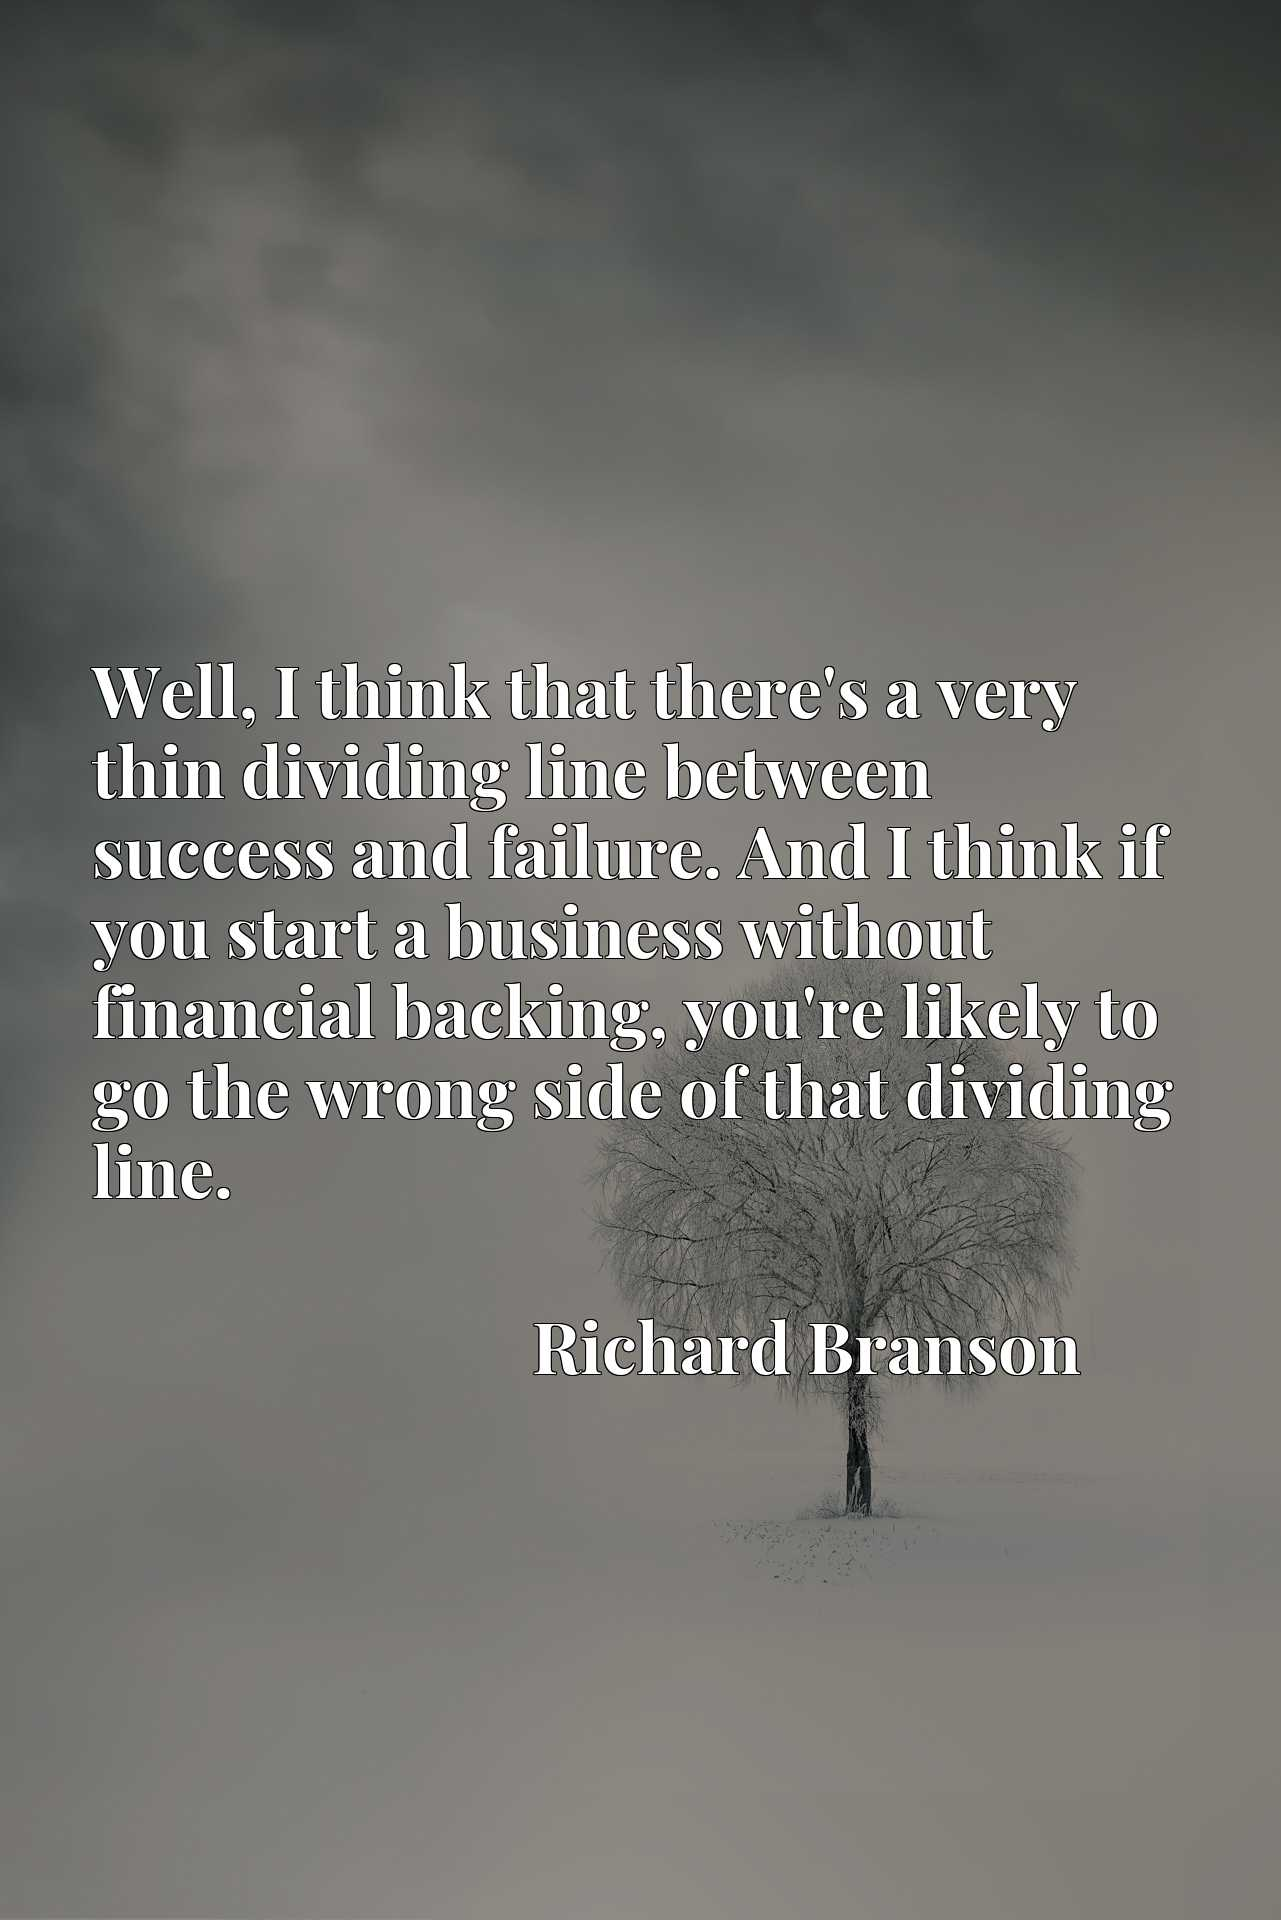 Well, I think that there's a very thin dividing line between success and failure. And I think if you start a business without financial backing, you're likely to go the wrong side of that dividing line.